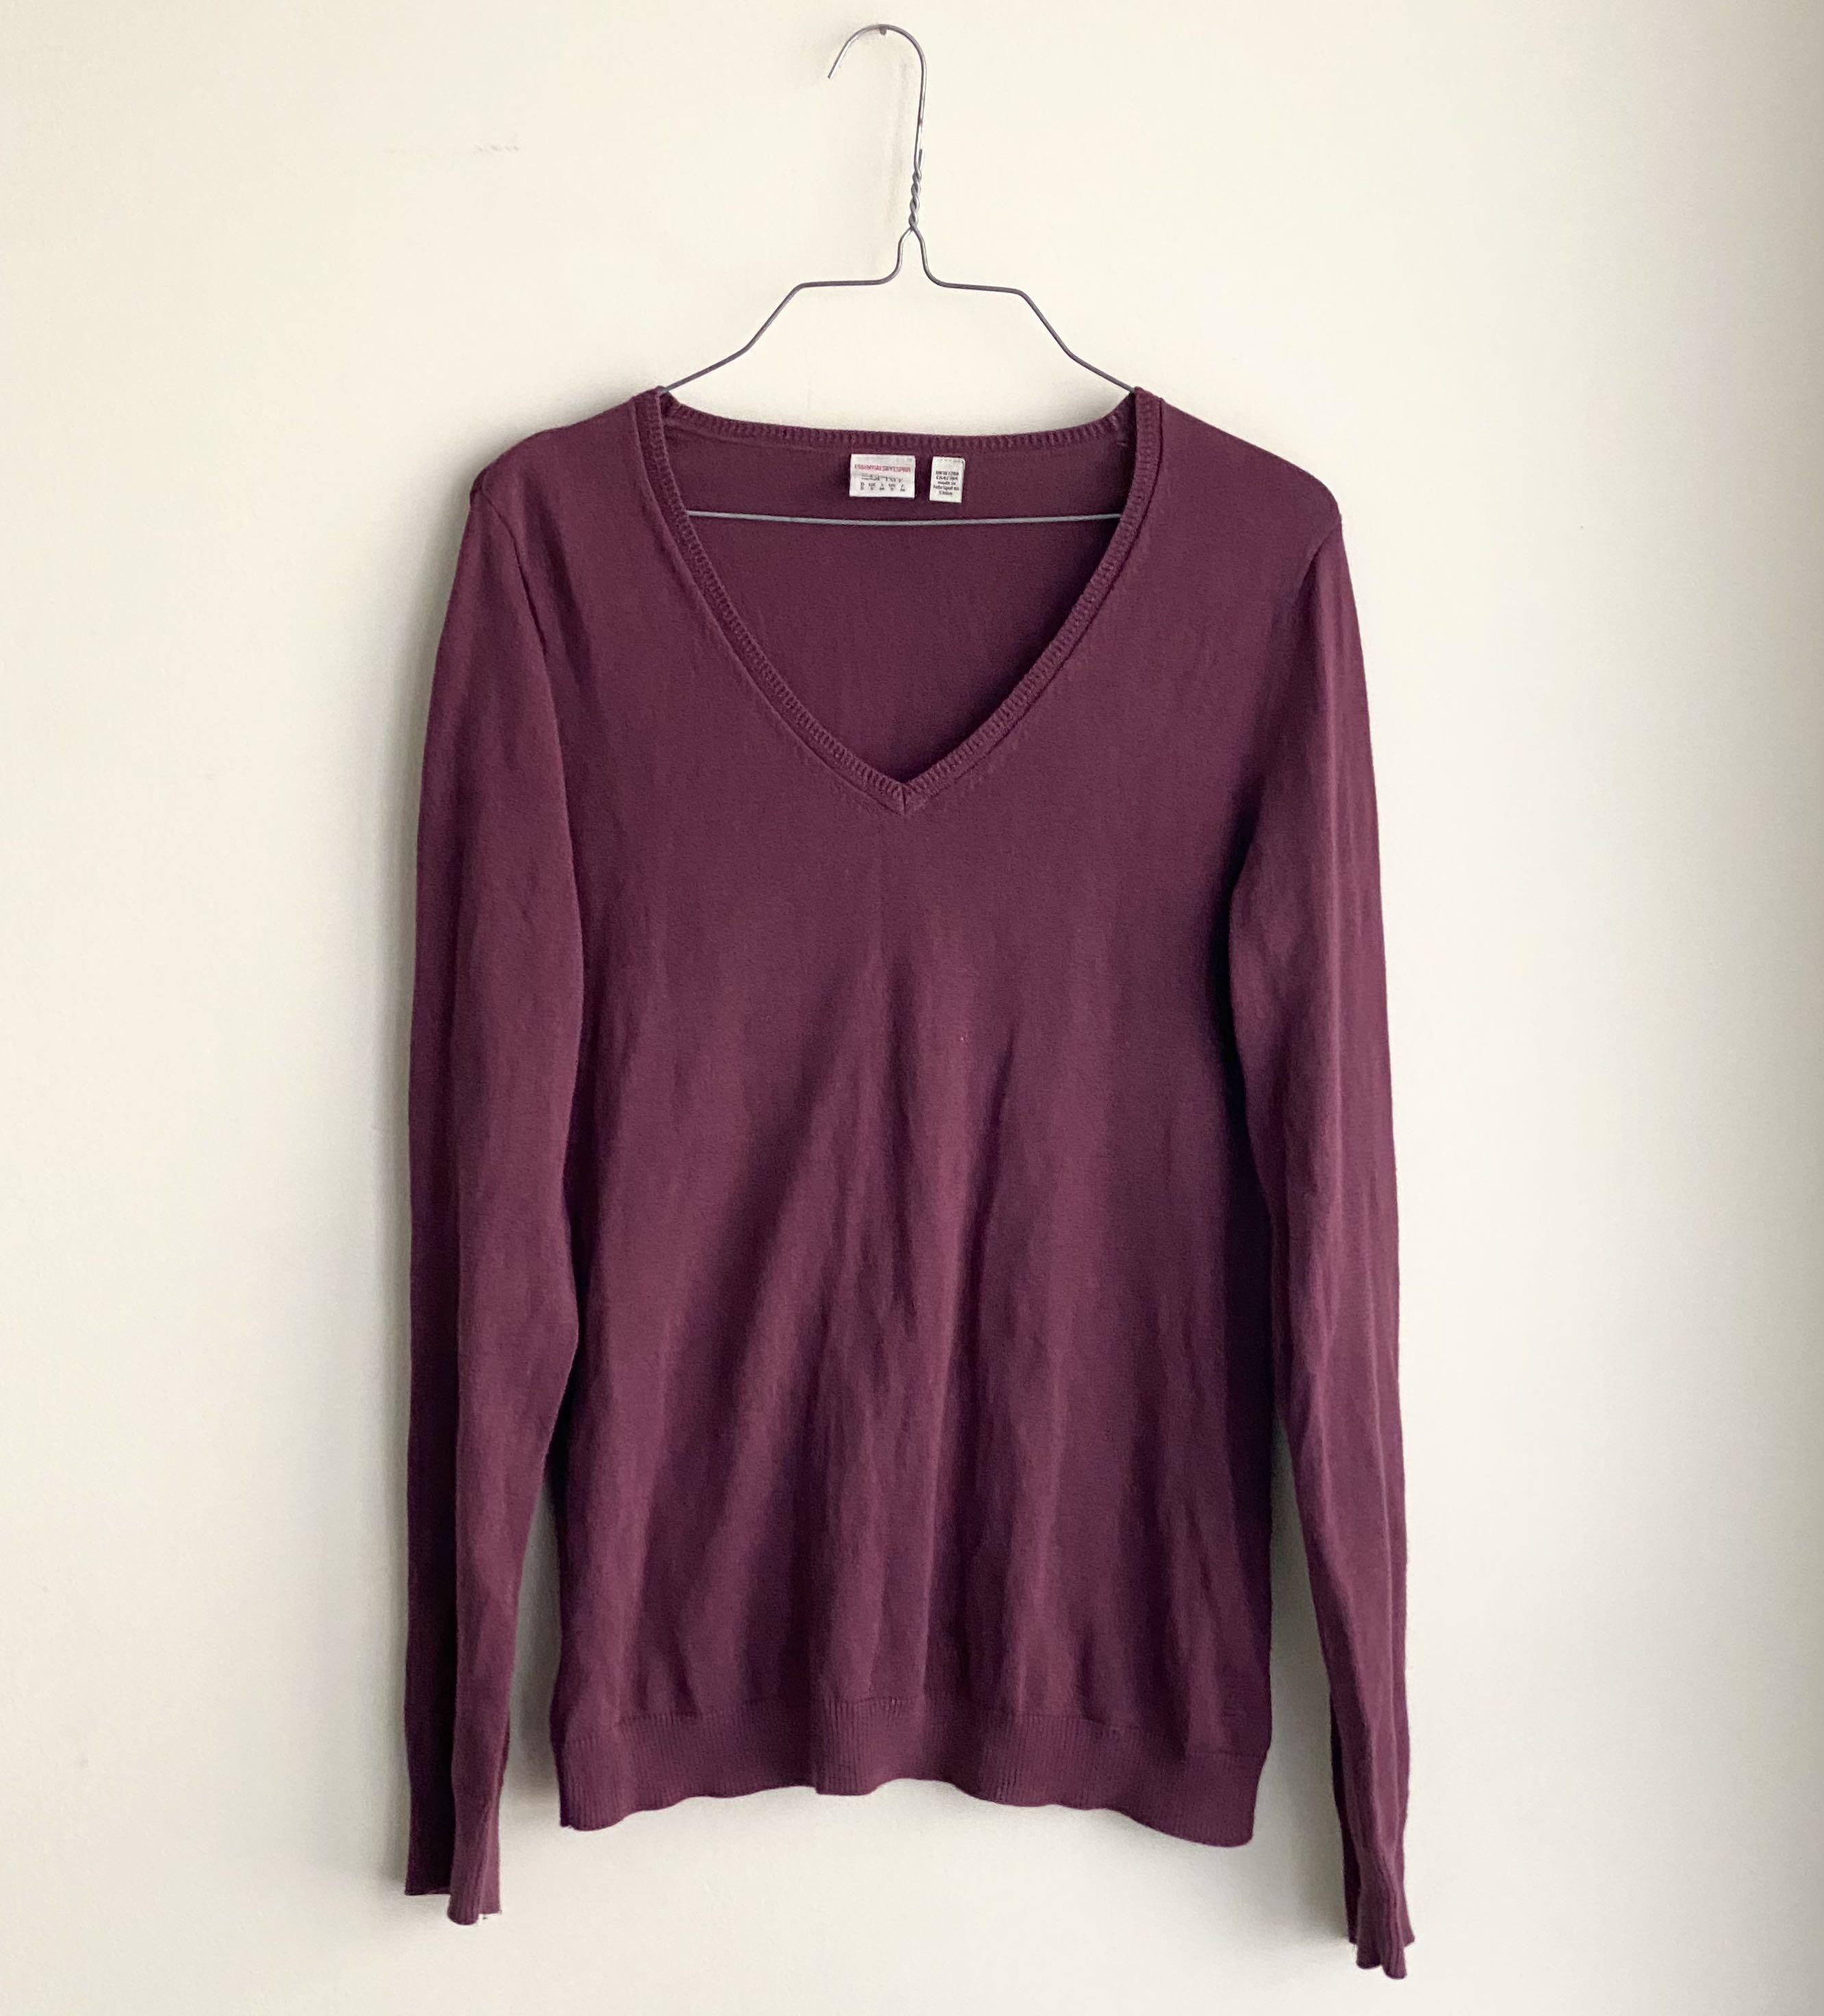 BRAND NEW ESPRIT MAROON V NECK LONG SLEEVE